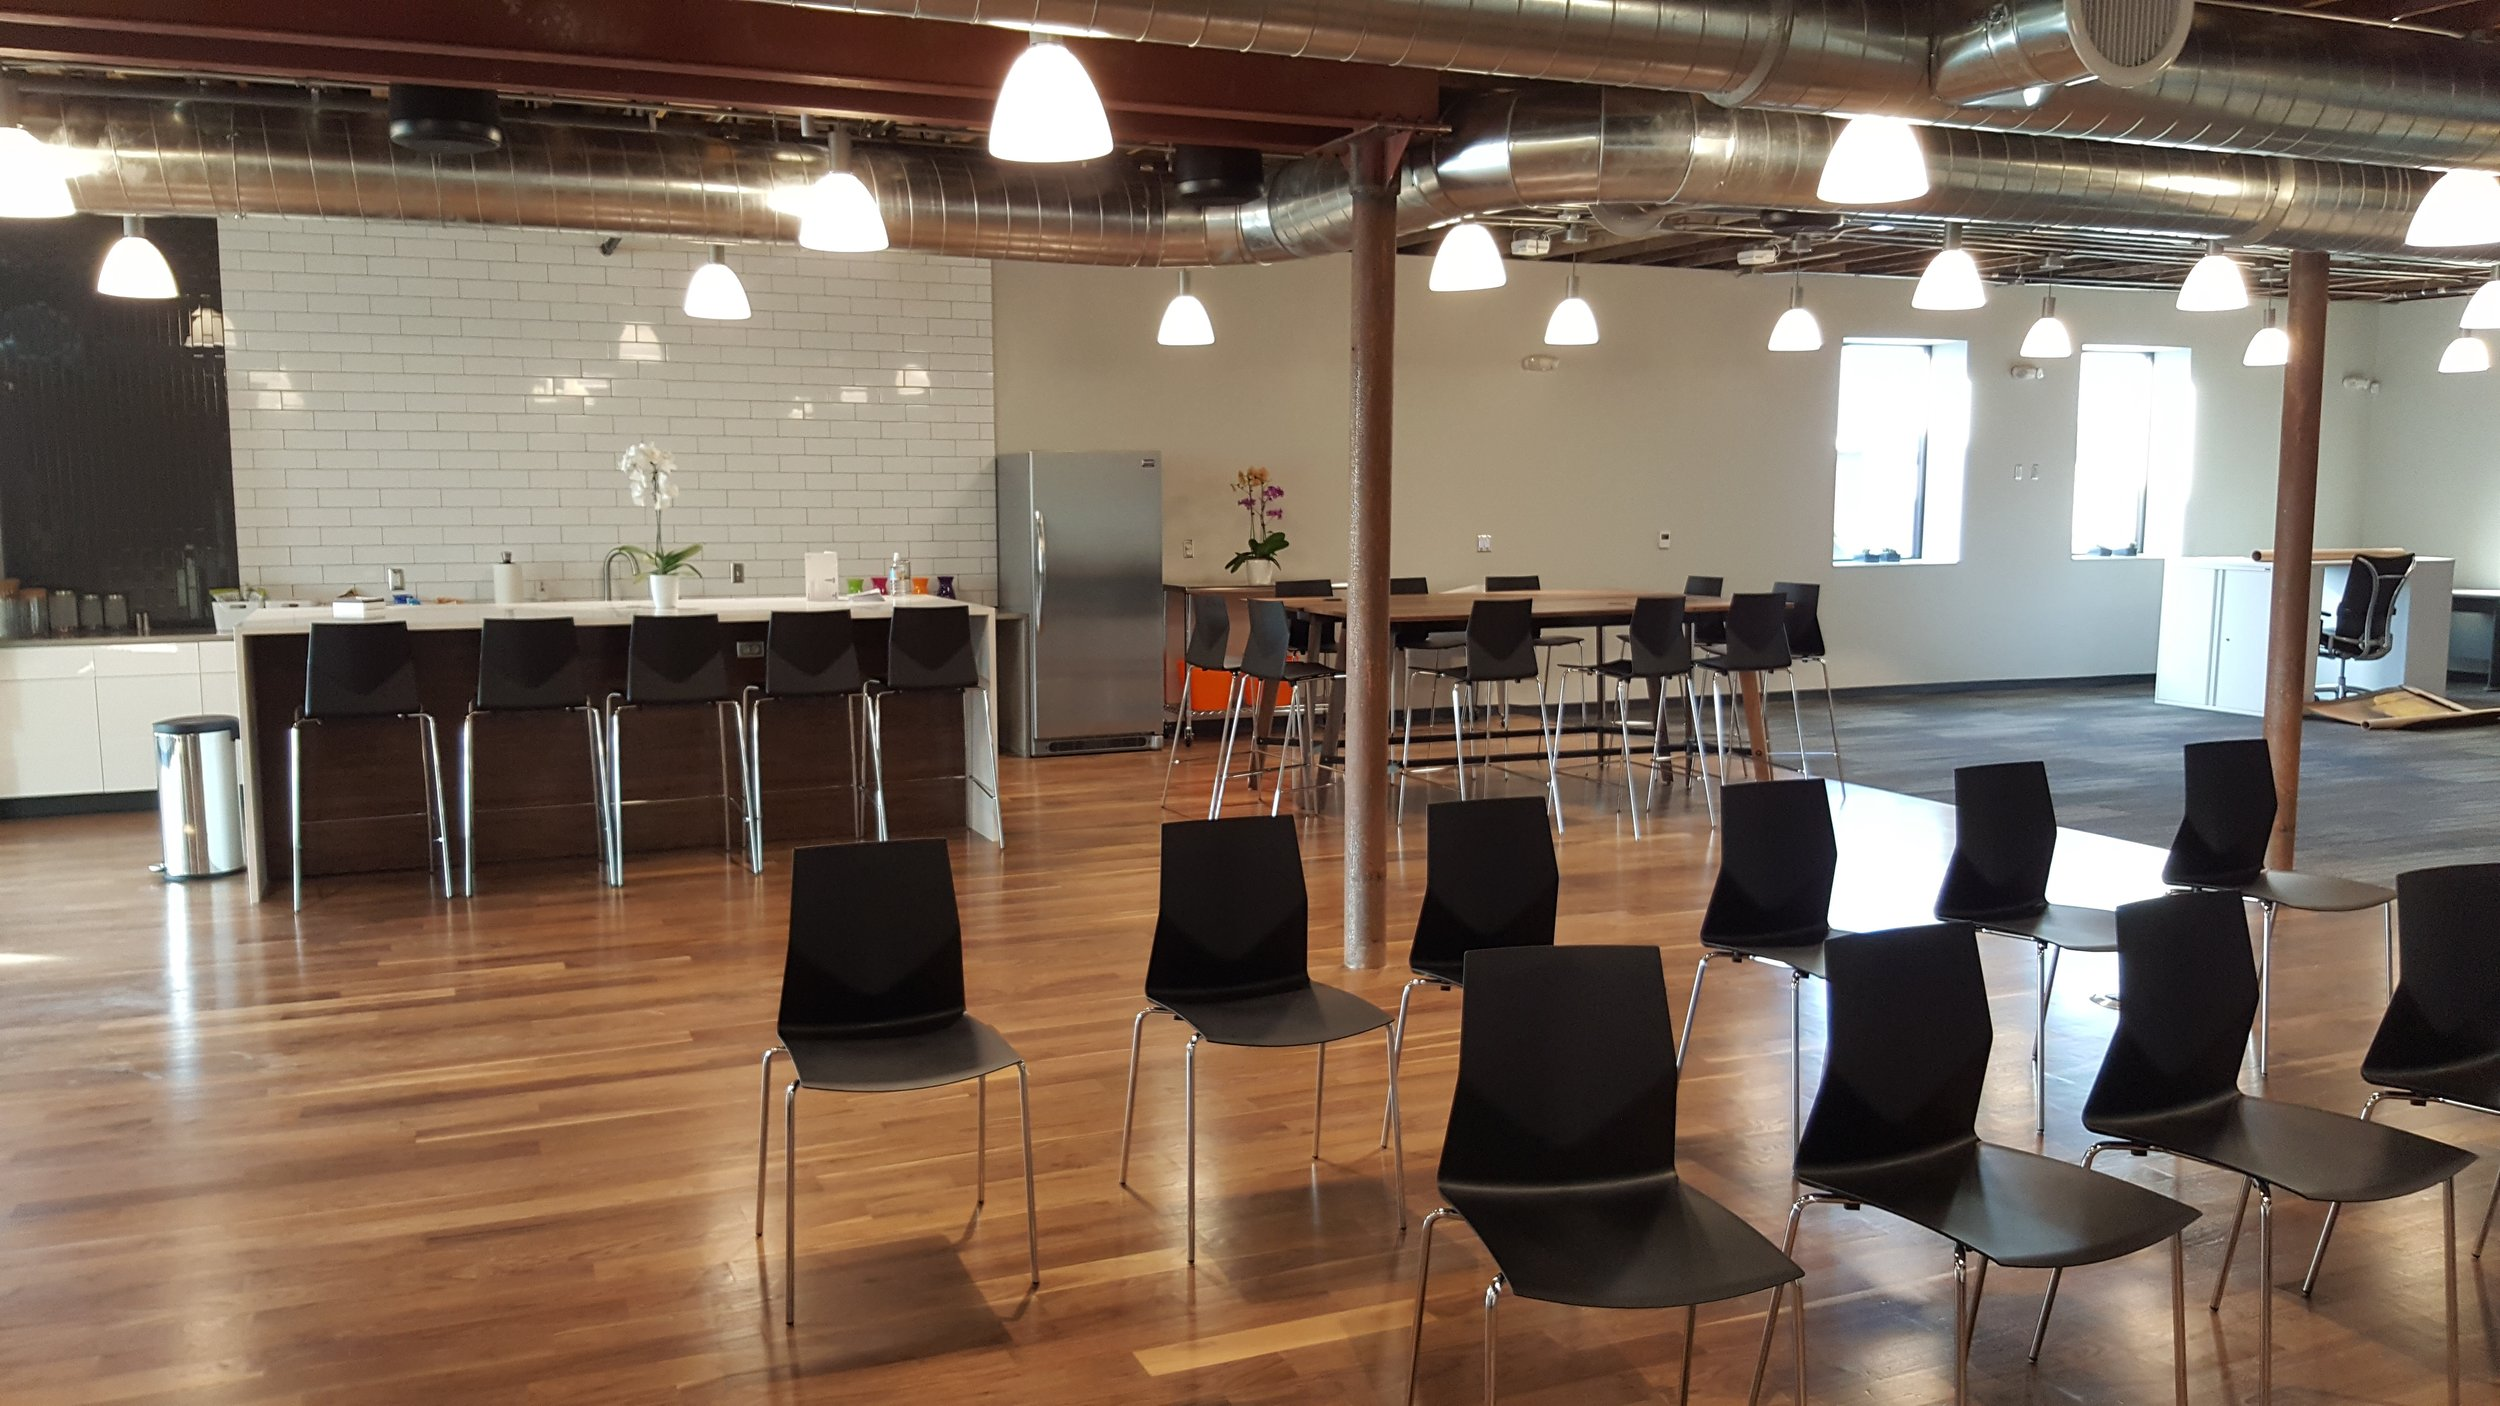 See more photos of ACI Boland's new space in the gallery below.